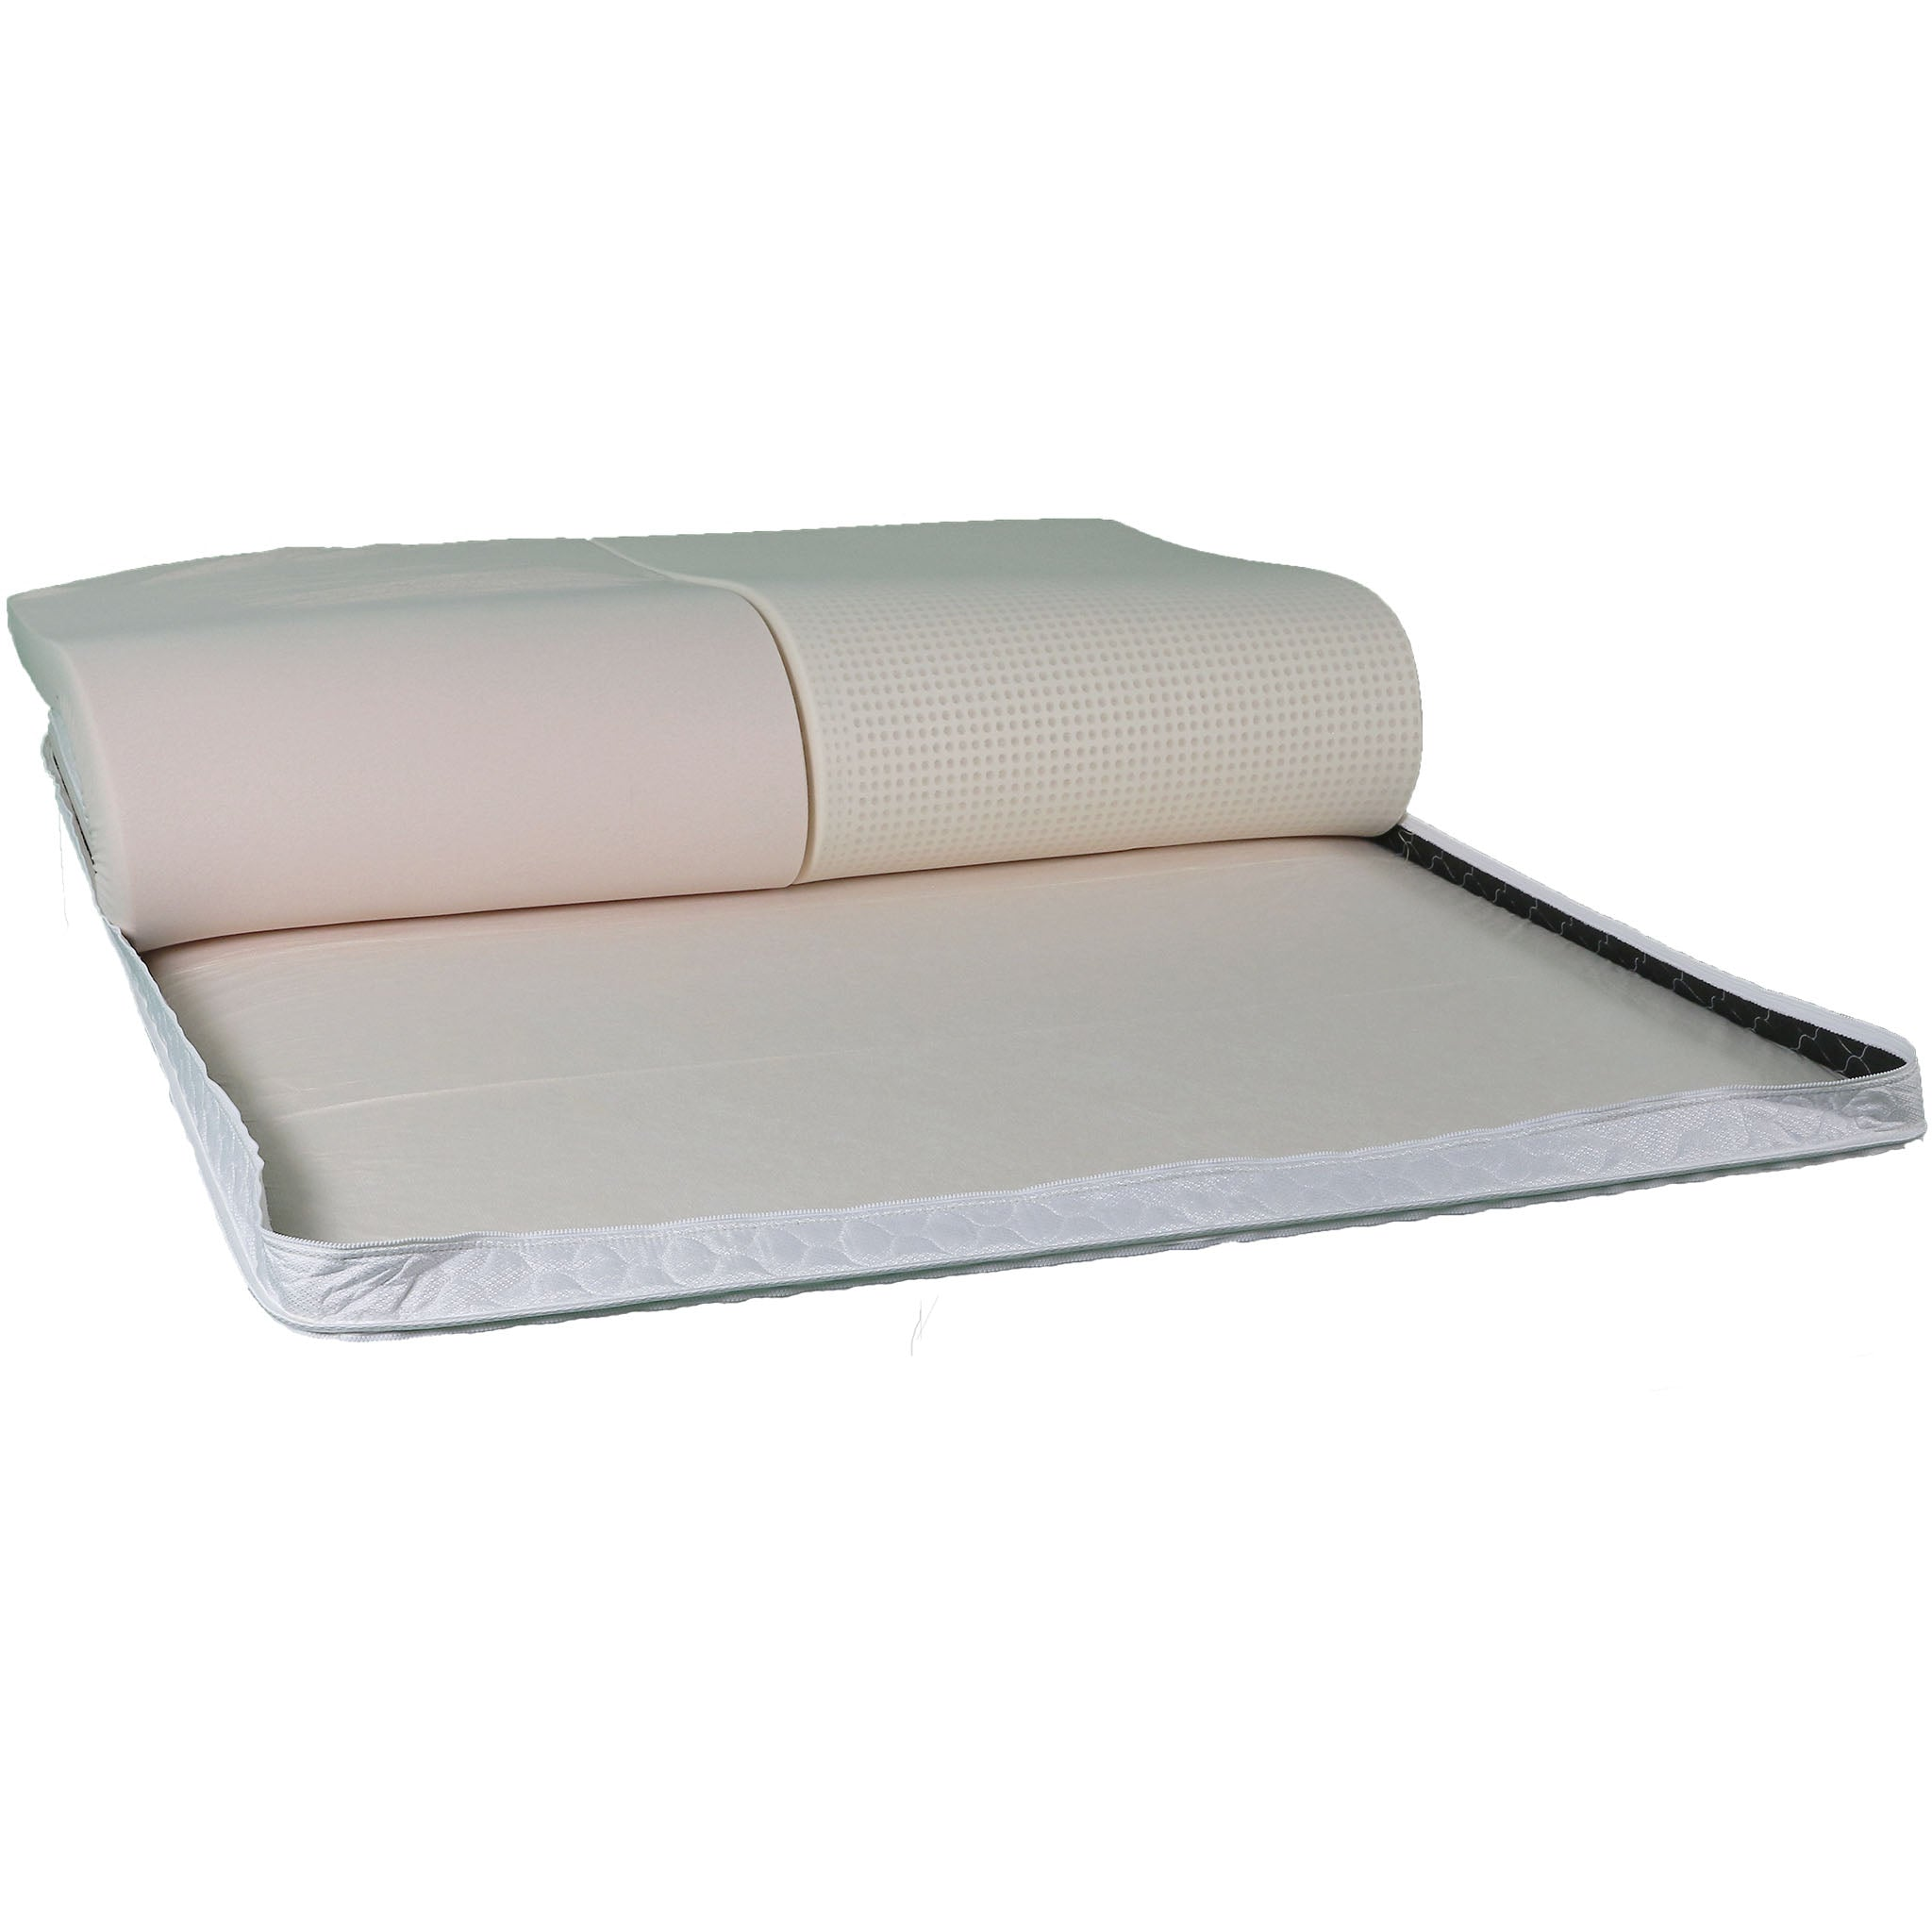 Euro Gusset for Silver Lining Series Mattresses - Sterling Sleep Systems